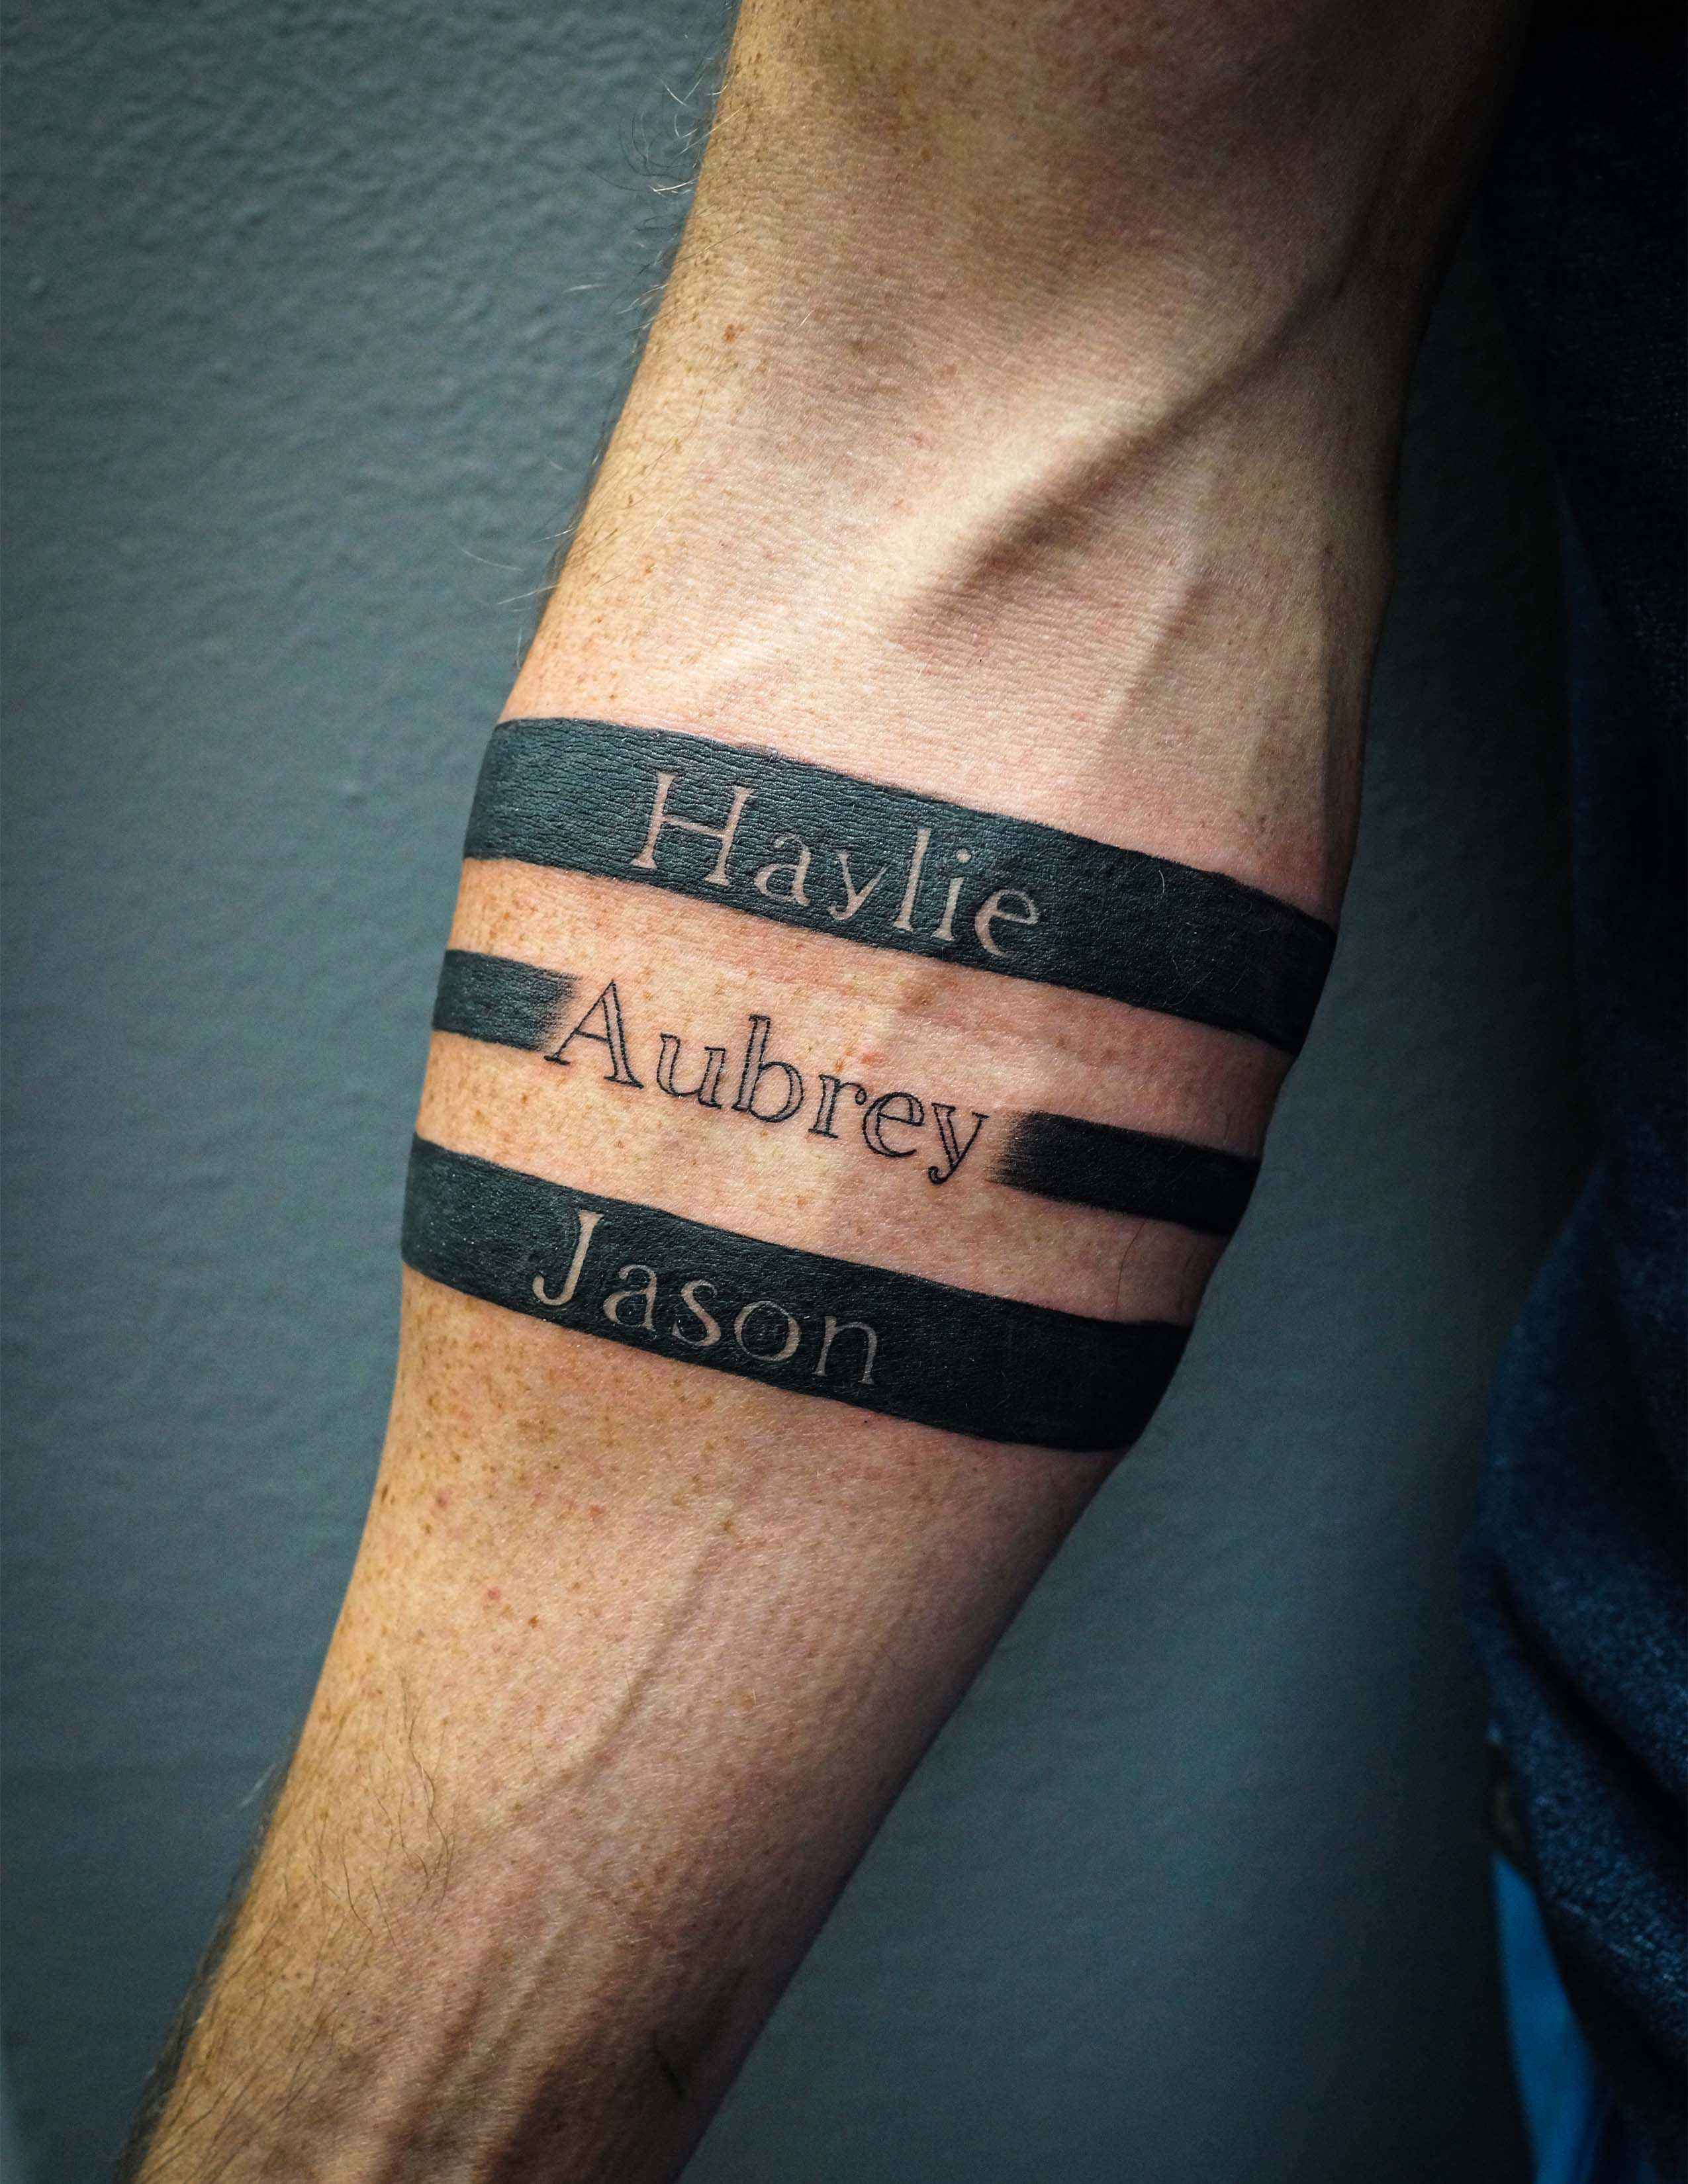 Armband Tattoo With Kids Names Tattoos With Kids Names Arm Band Tattoo Forearm Band Tattoos